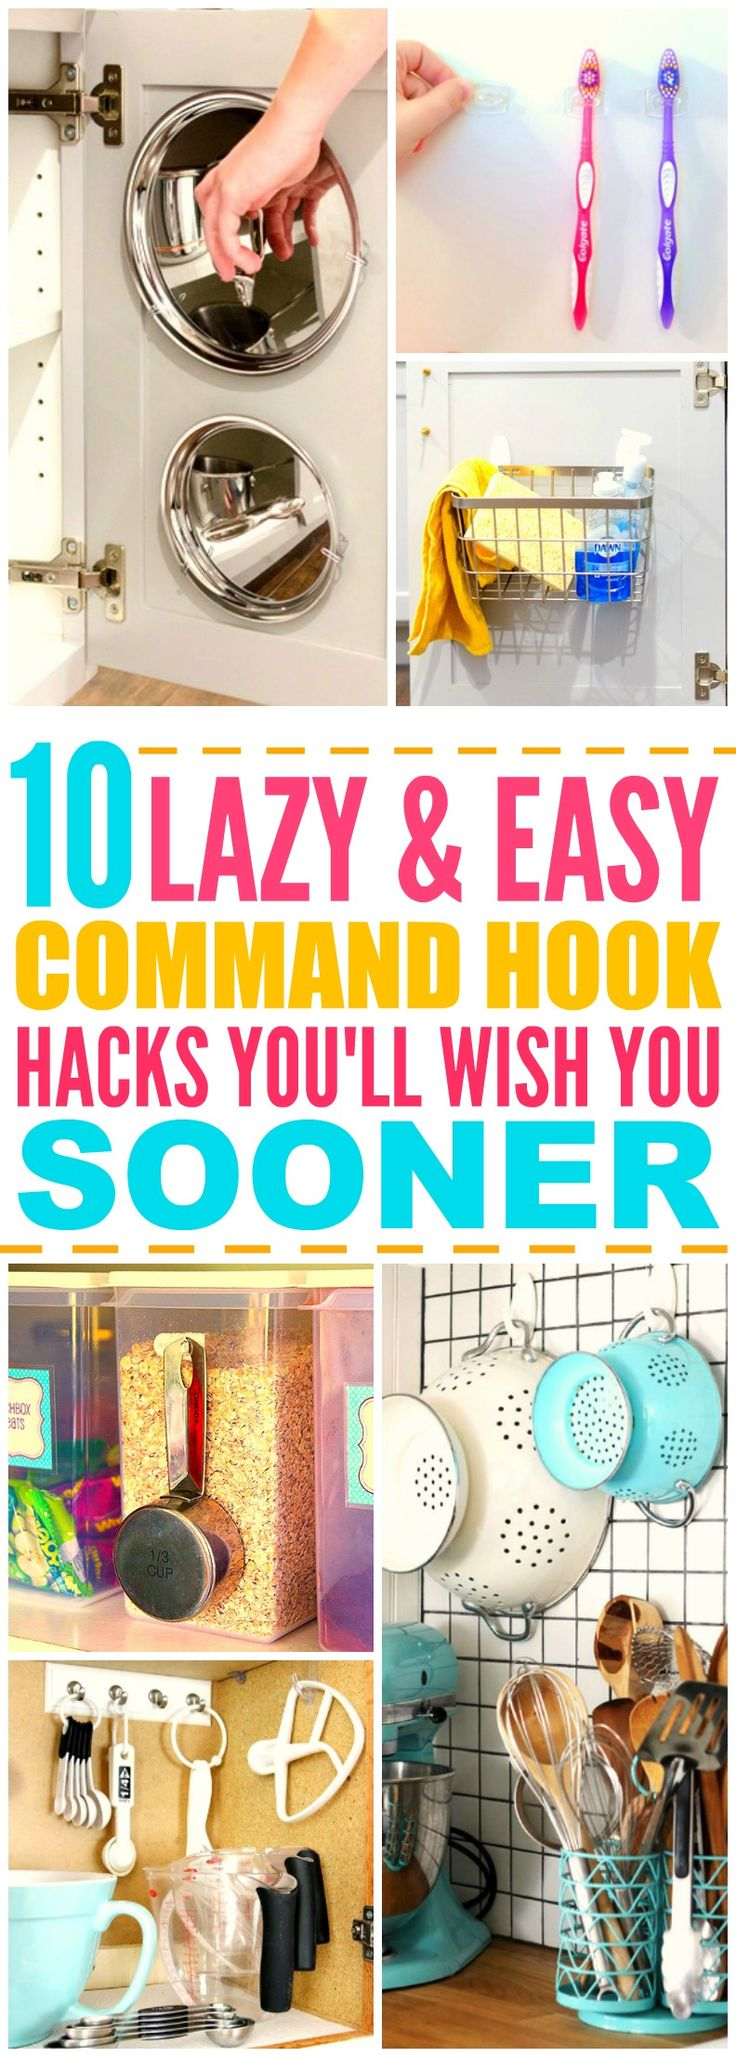 These 10 life changing command hook hacks are THE BEST! I'm so happy I found…